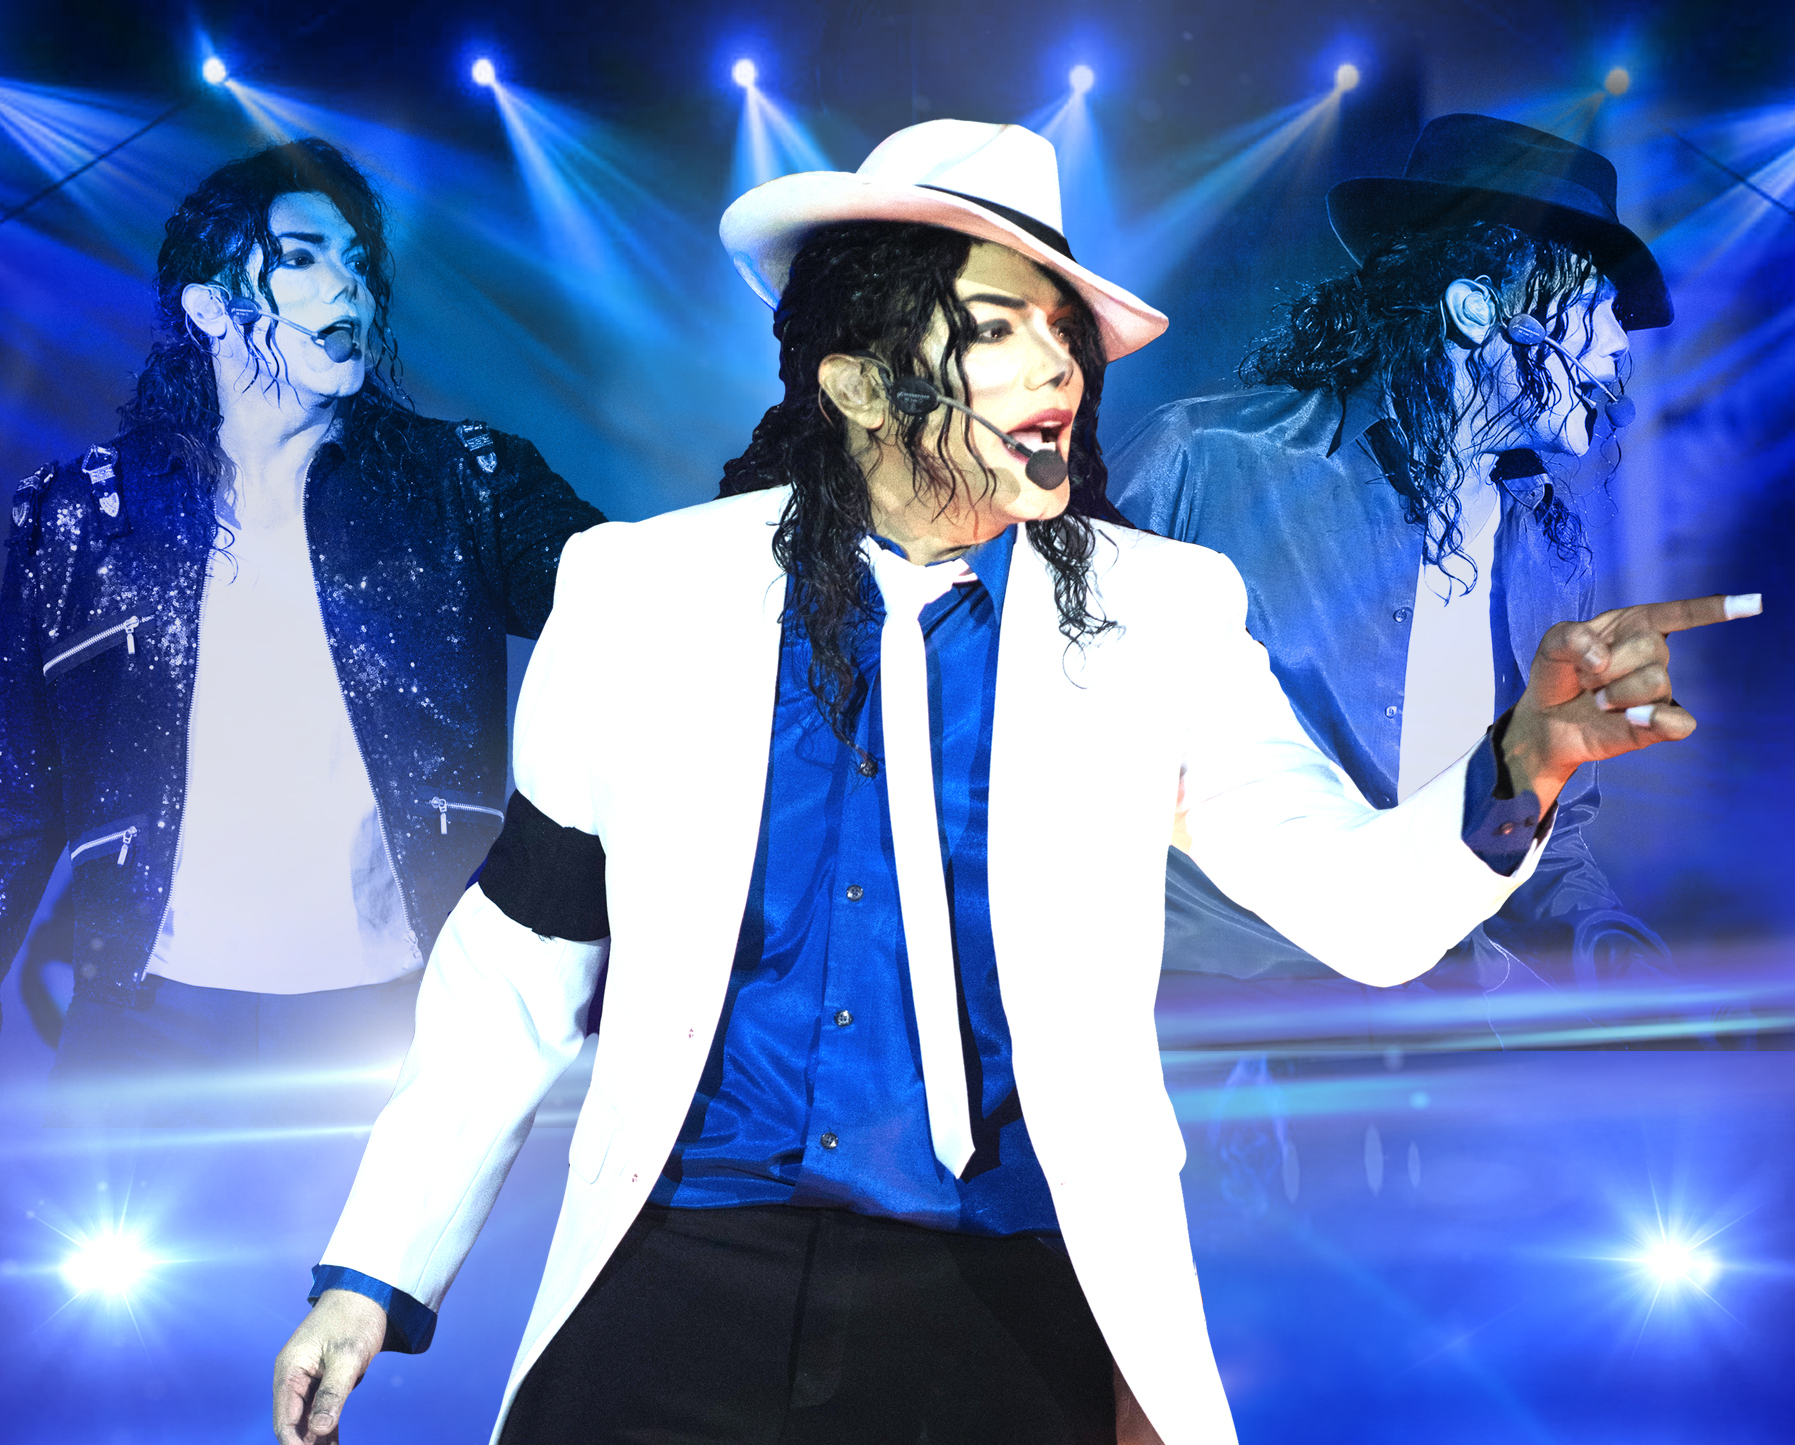 King Of Pop – The Legend Continues stars world-renowned Michael Jackson tribute artist Navi